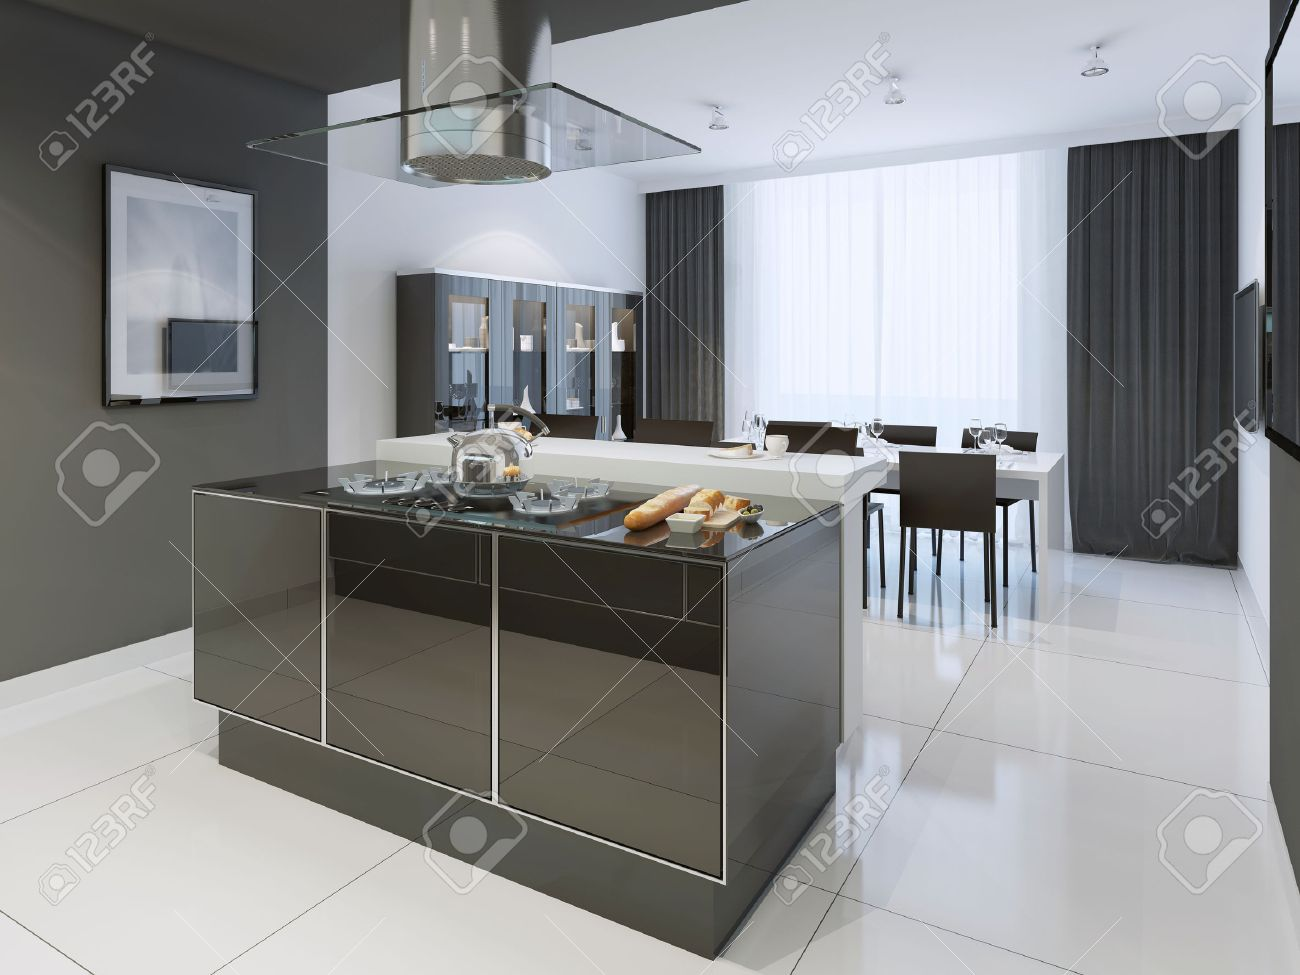 Stunning Cucina Stile Moderno Contemporary - bakeroffroad.us ...